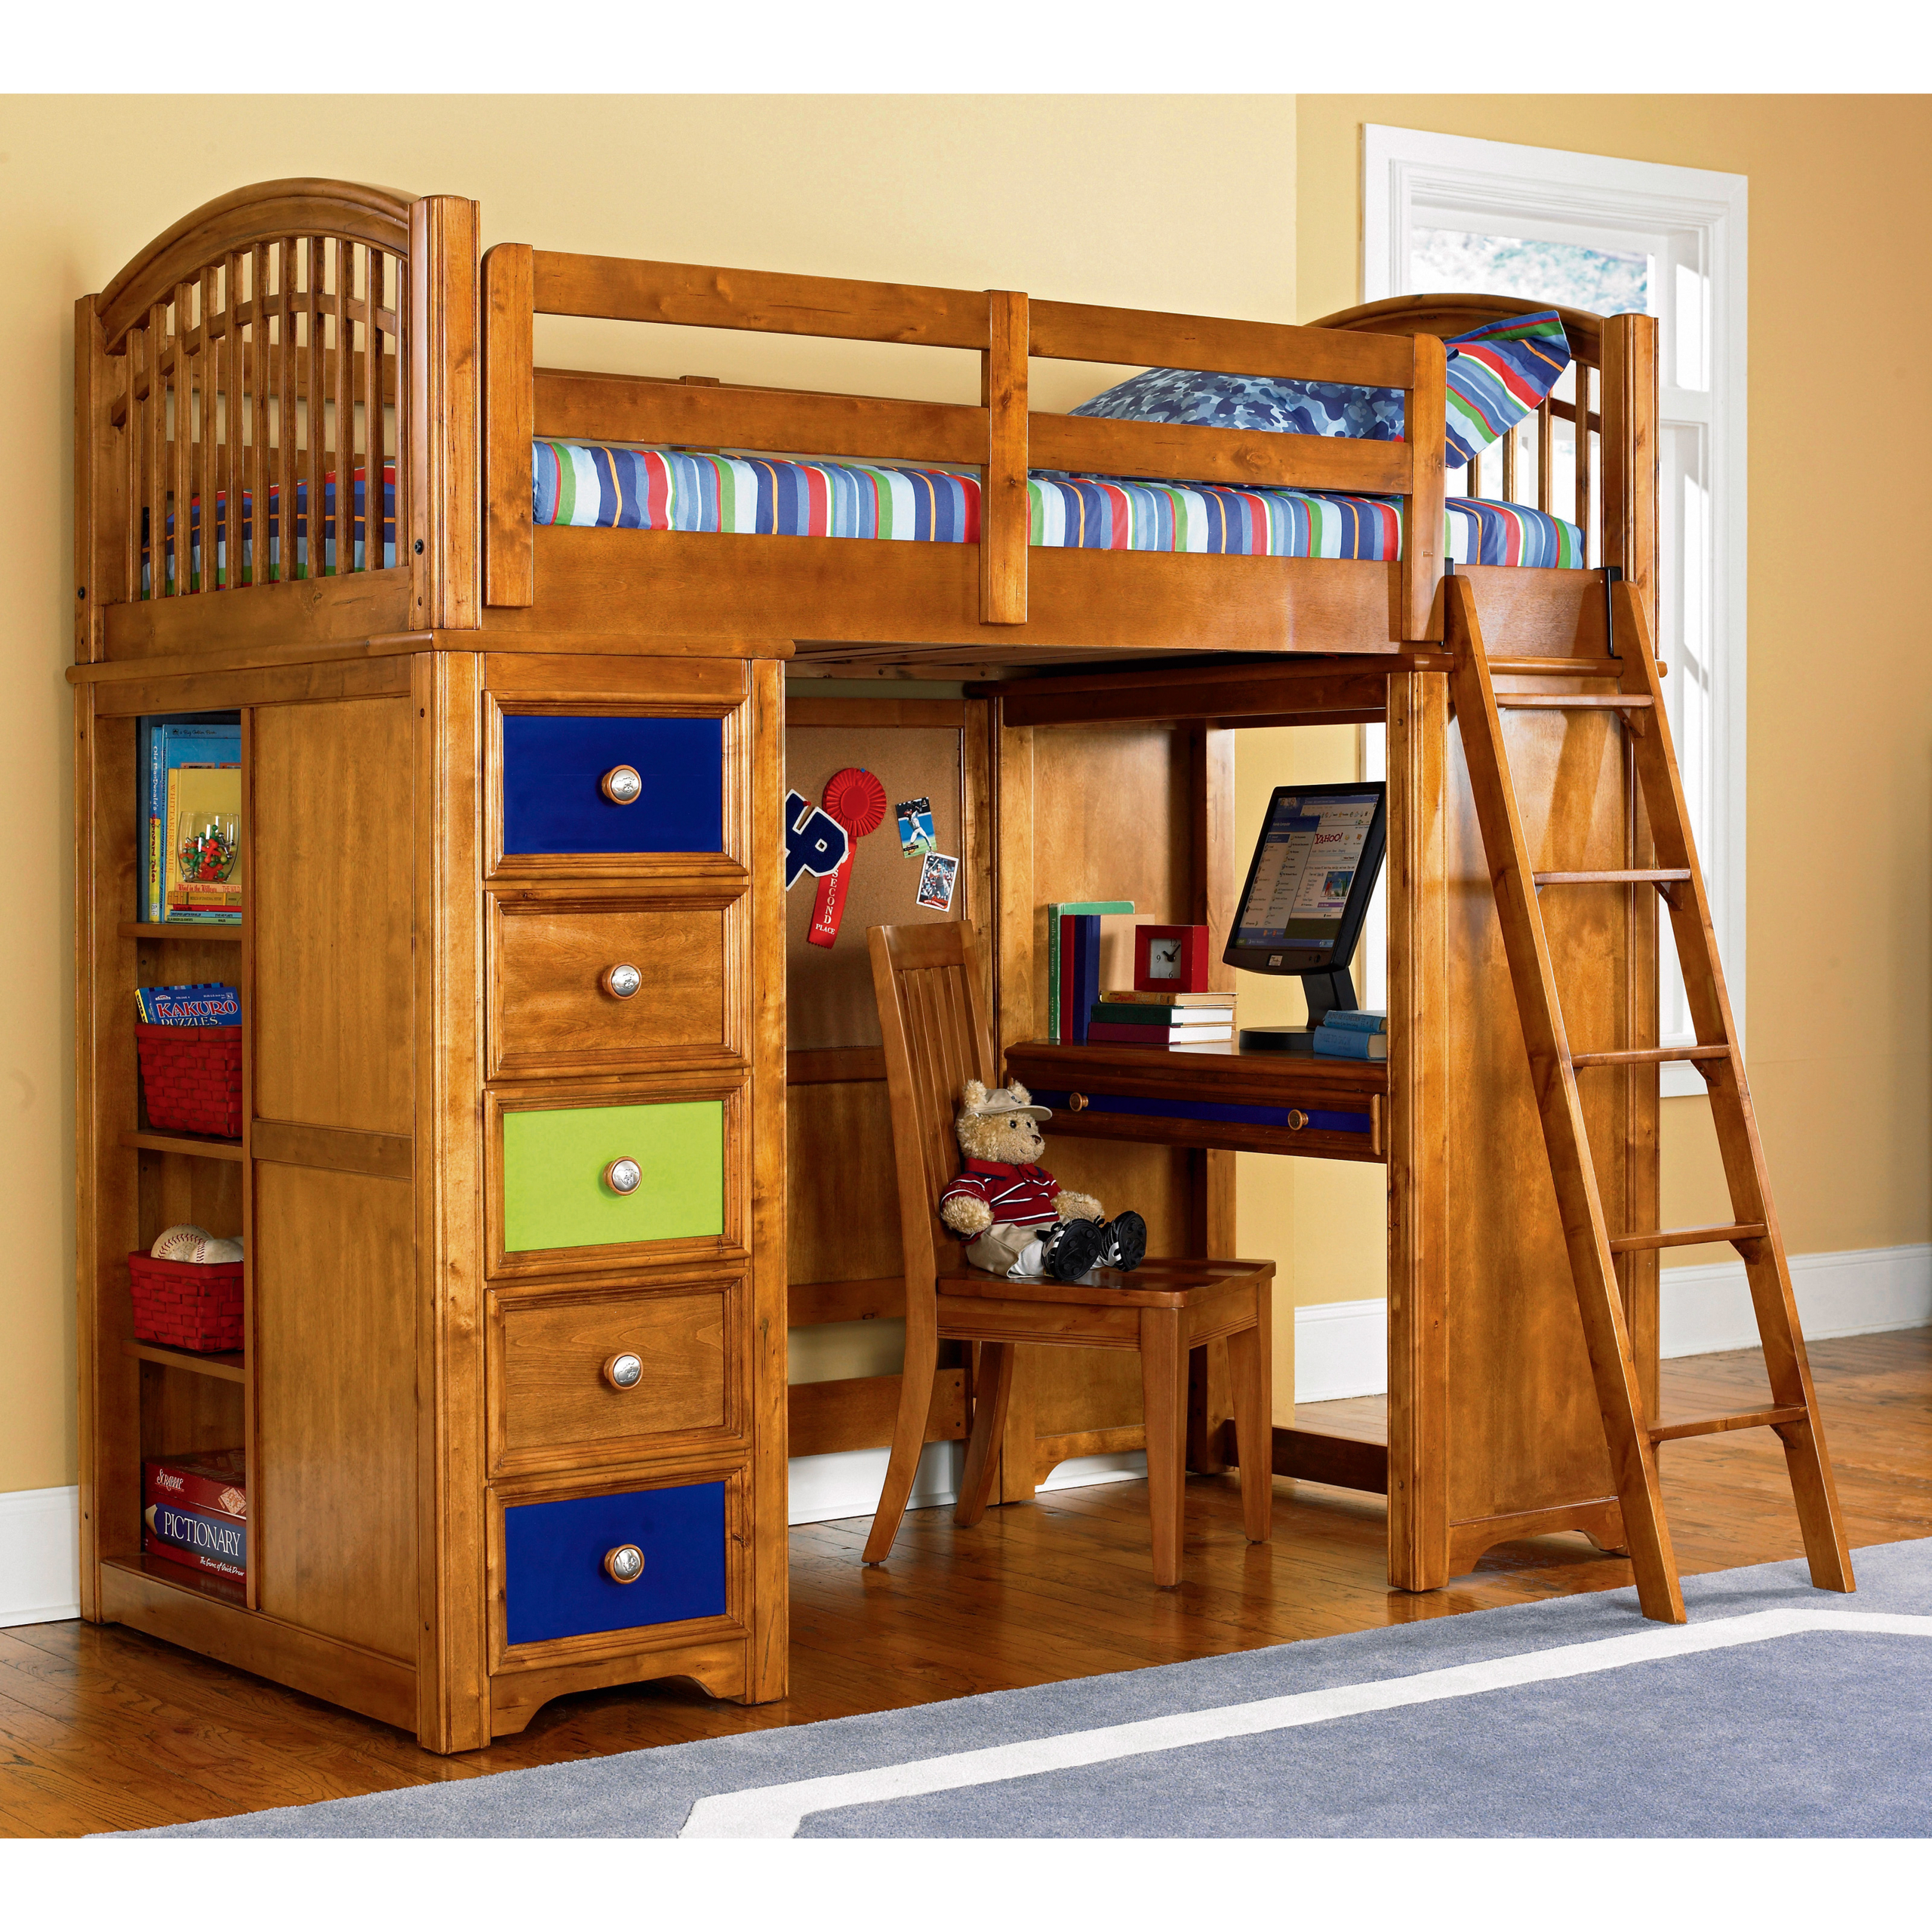 Picture of: Build A Bear Furniture Ideas On Foter